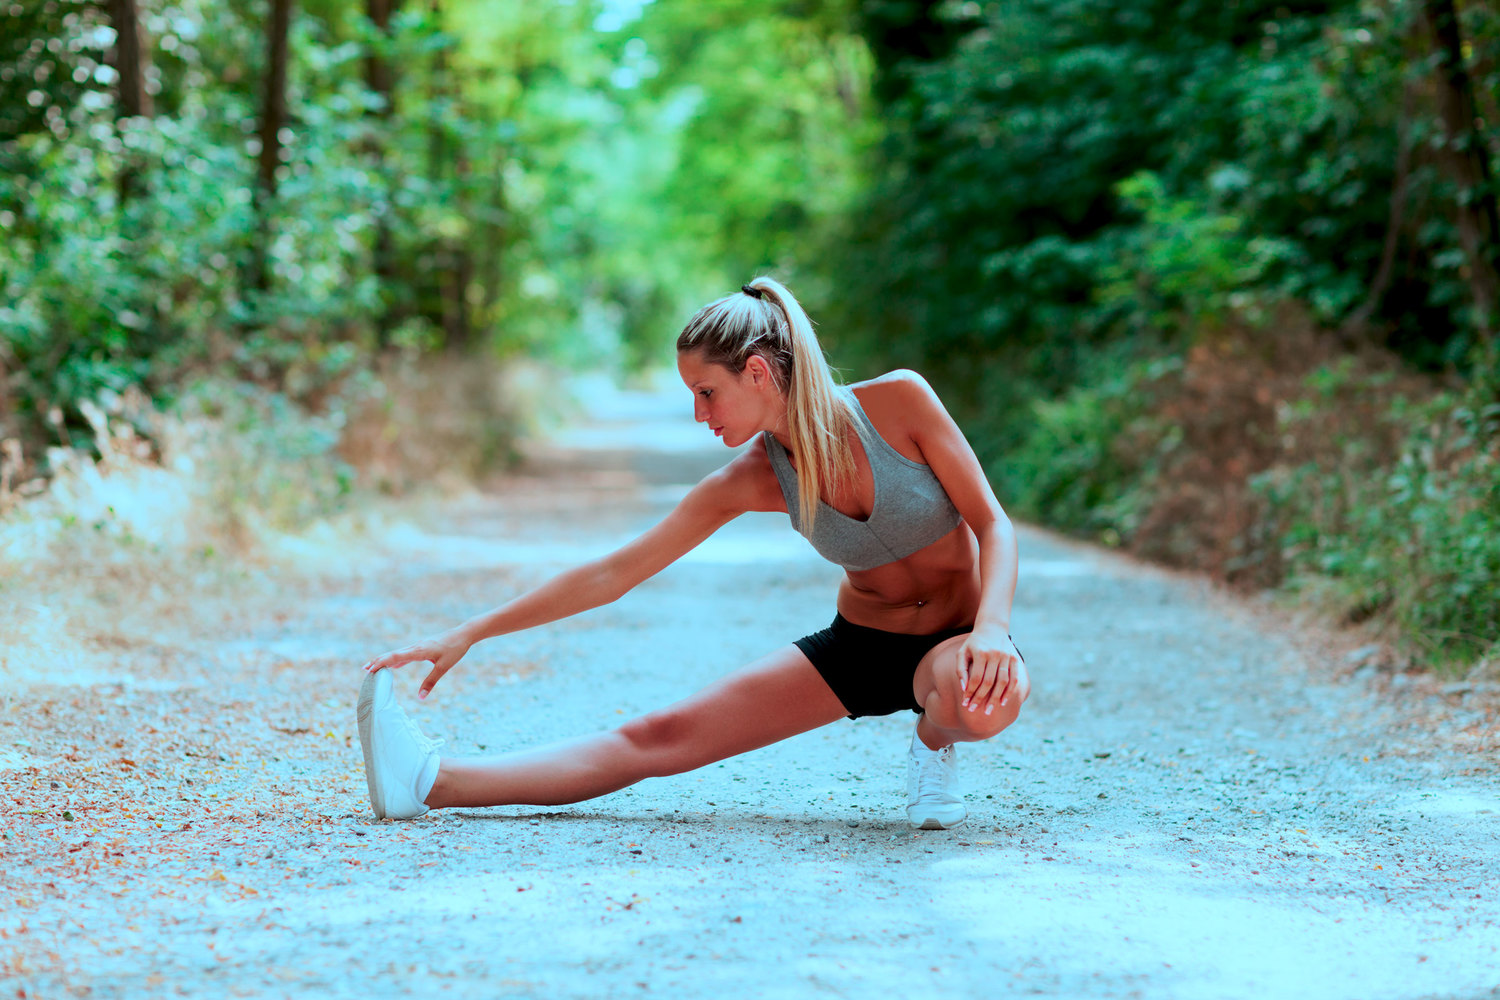 Weakness is usually the prime reason people get injured while running.